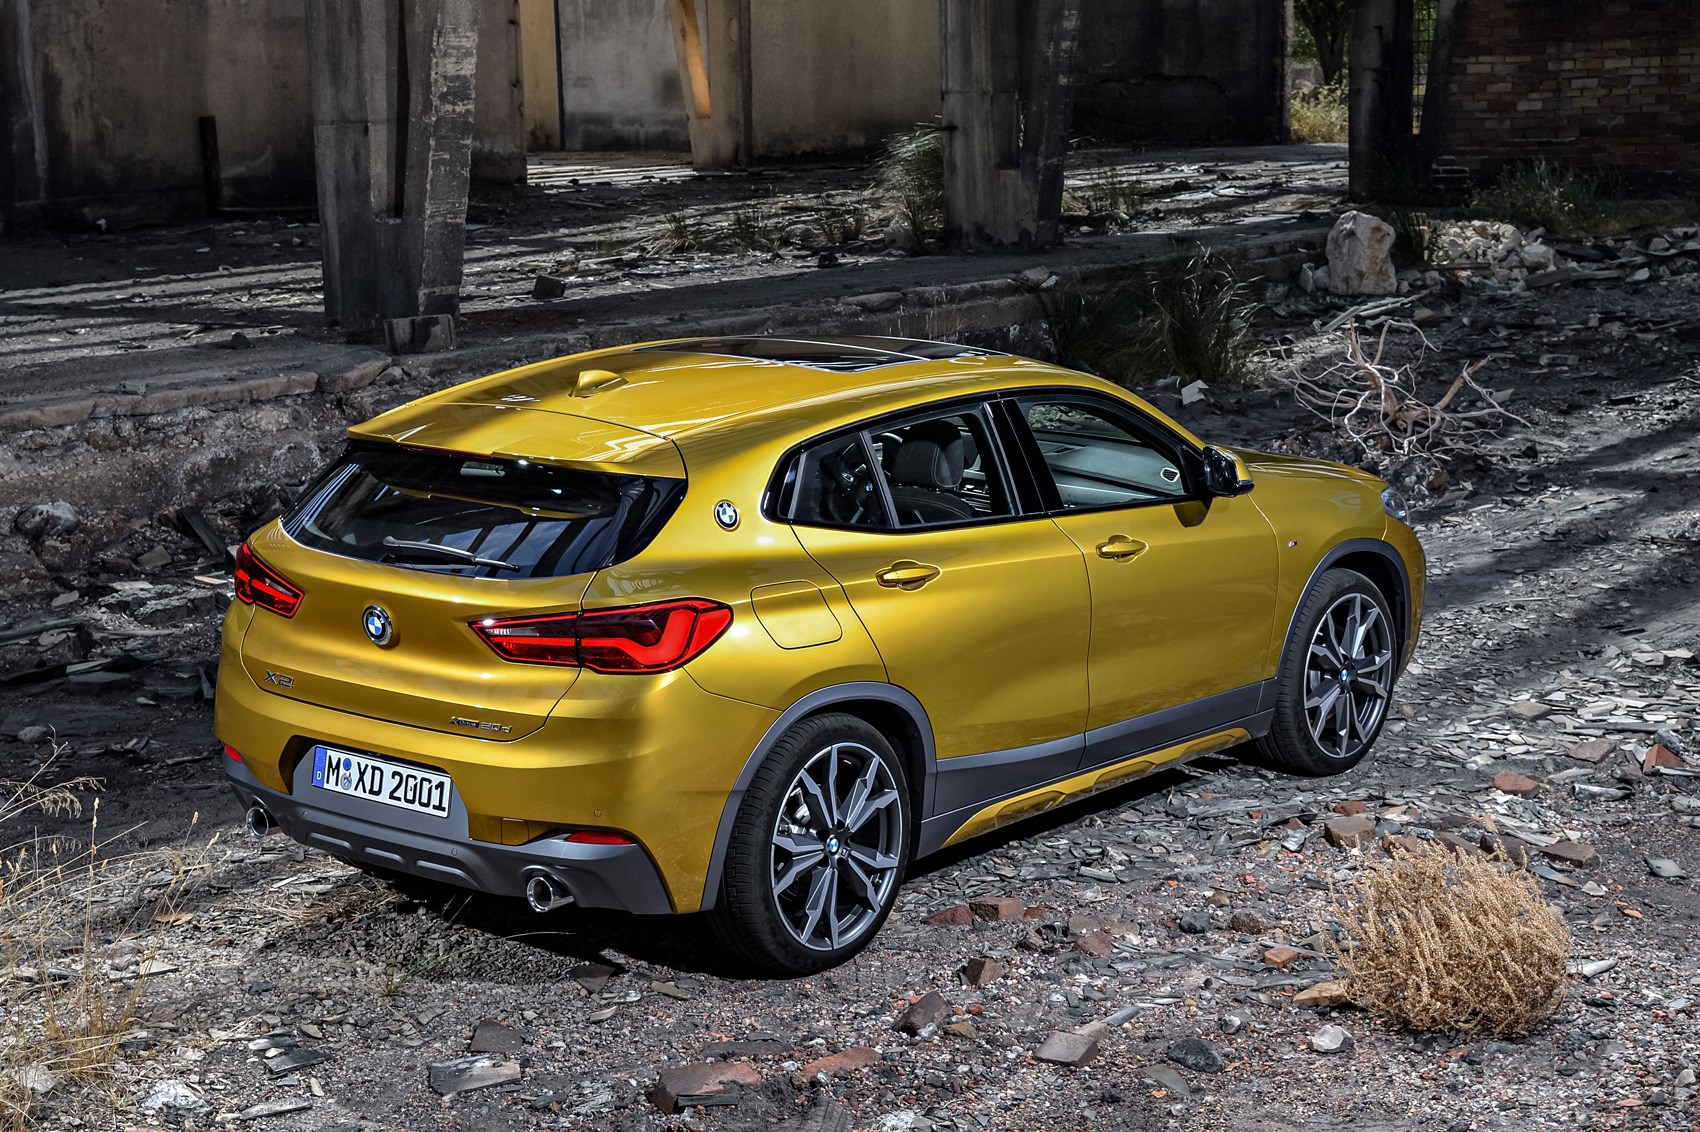 Bmw X2 Suv New Crossover Dubbed The Cool X Revealed By